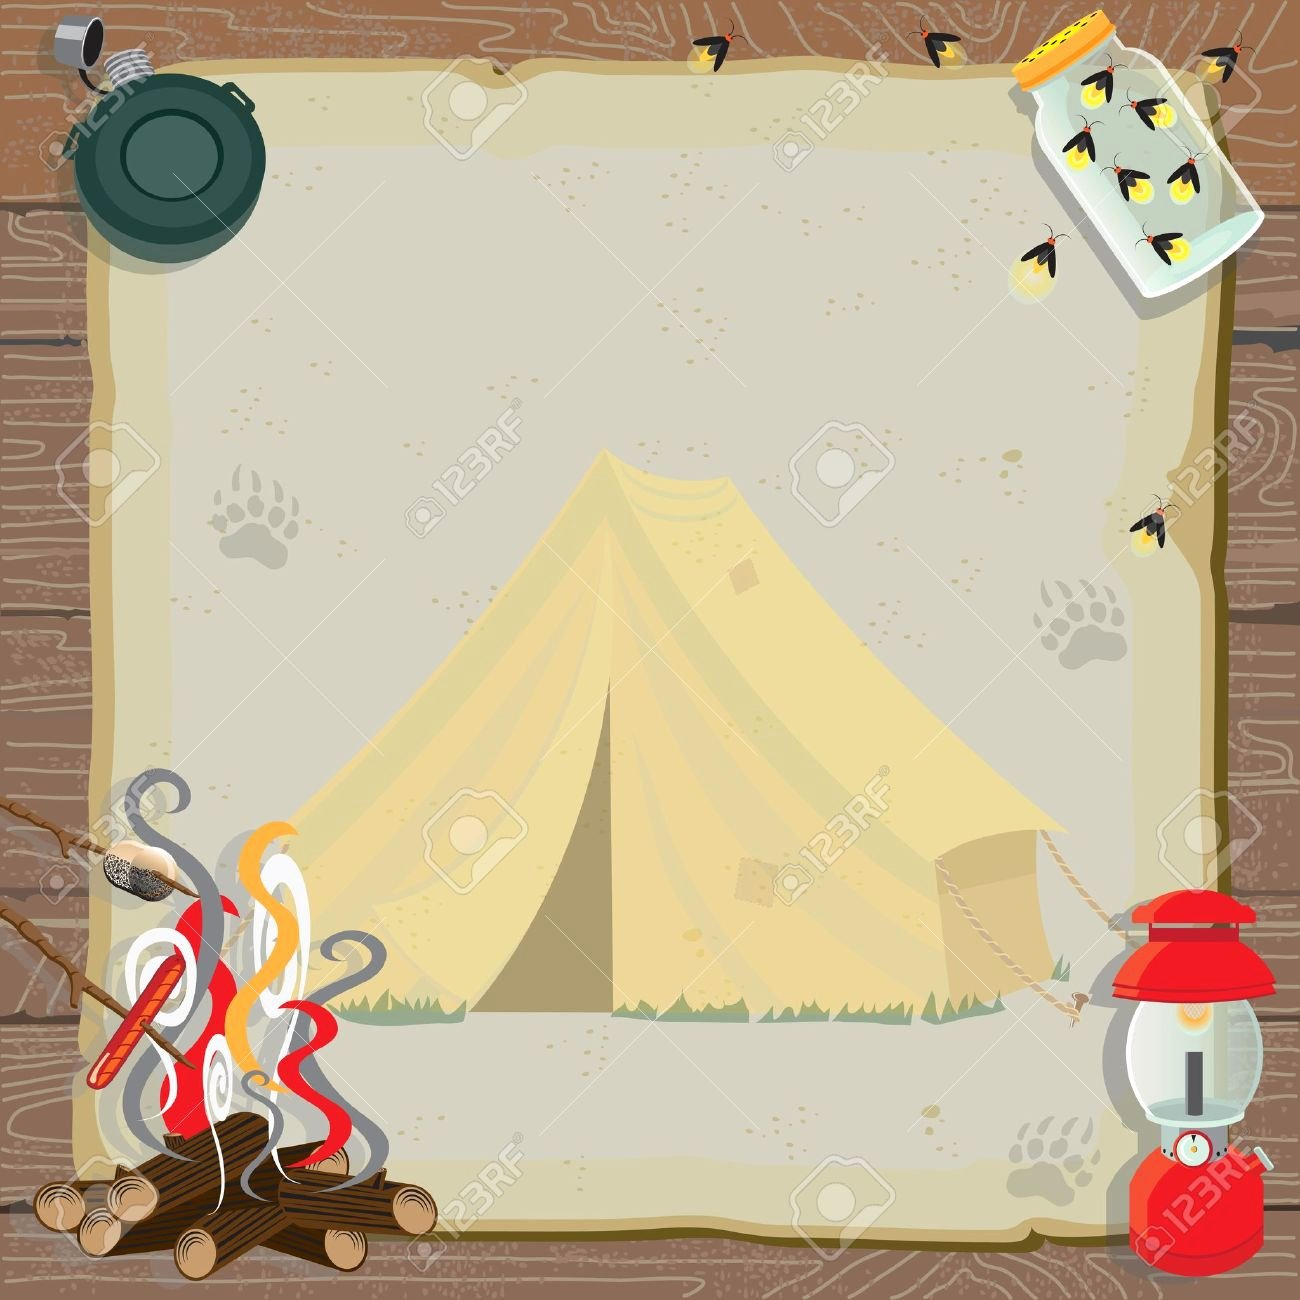 Camping Invitations Templates Free Best Of Camping Background Clipart – 101 Clip Art